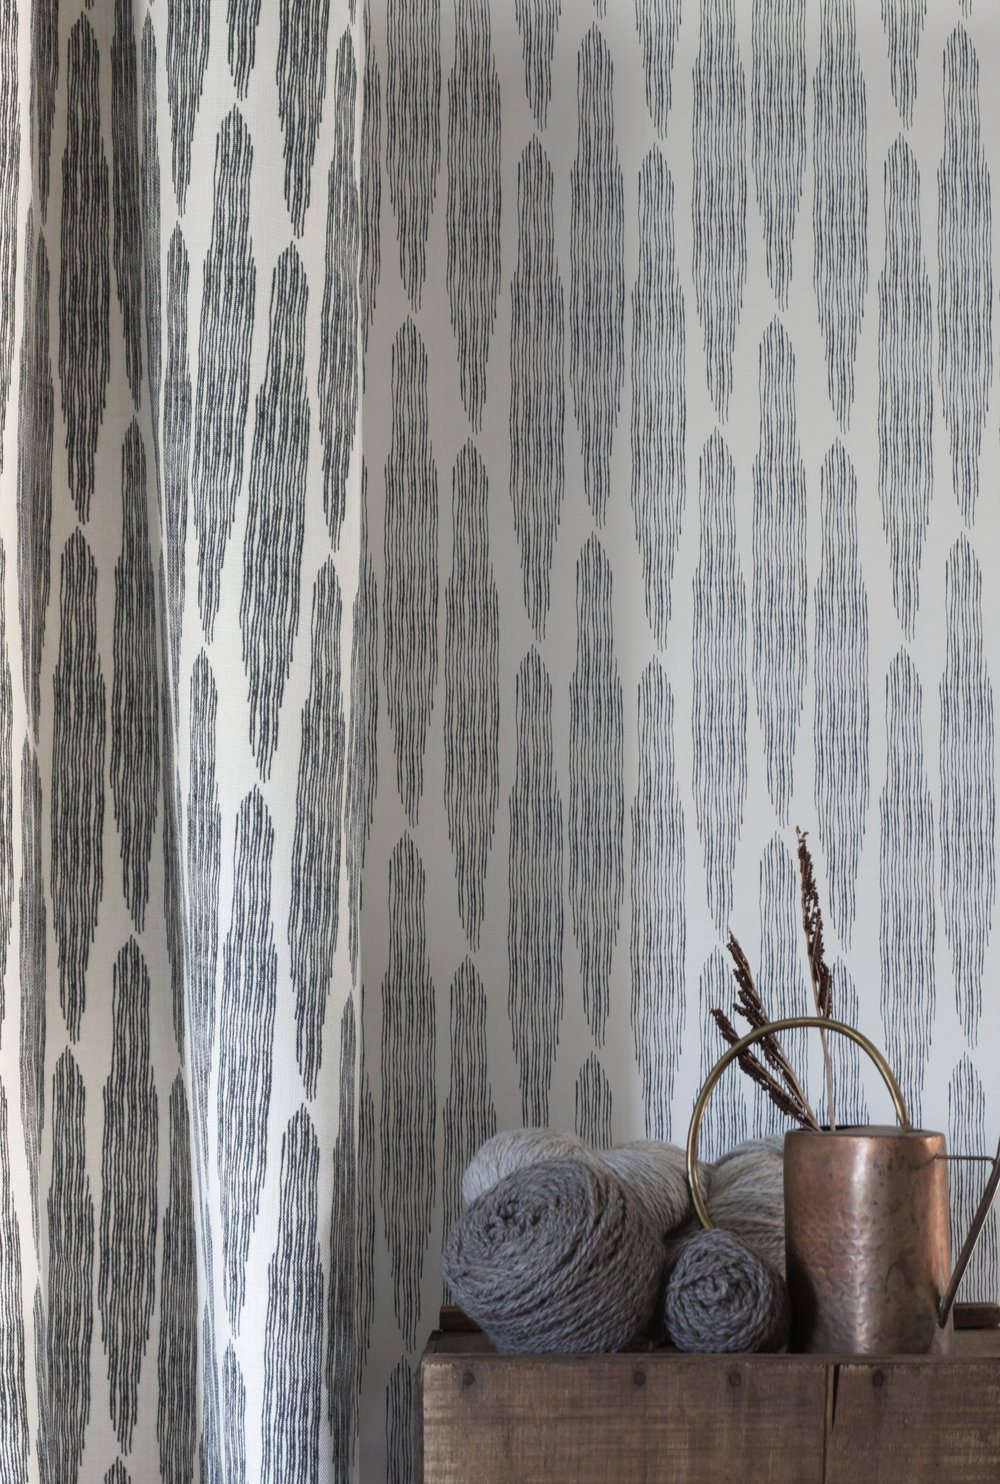 Pines Wallpaper($65 per yard), shown here in Midnight, is reminiscent of cold New England: &#8